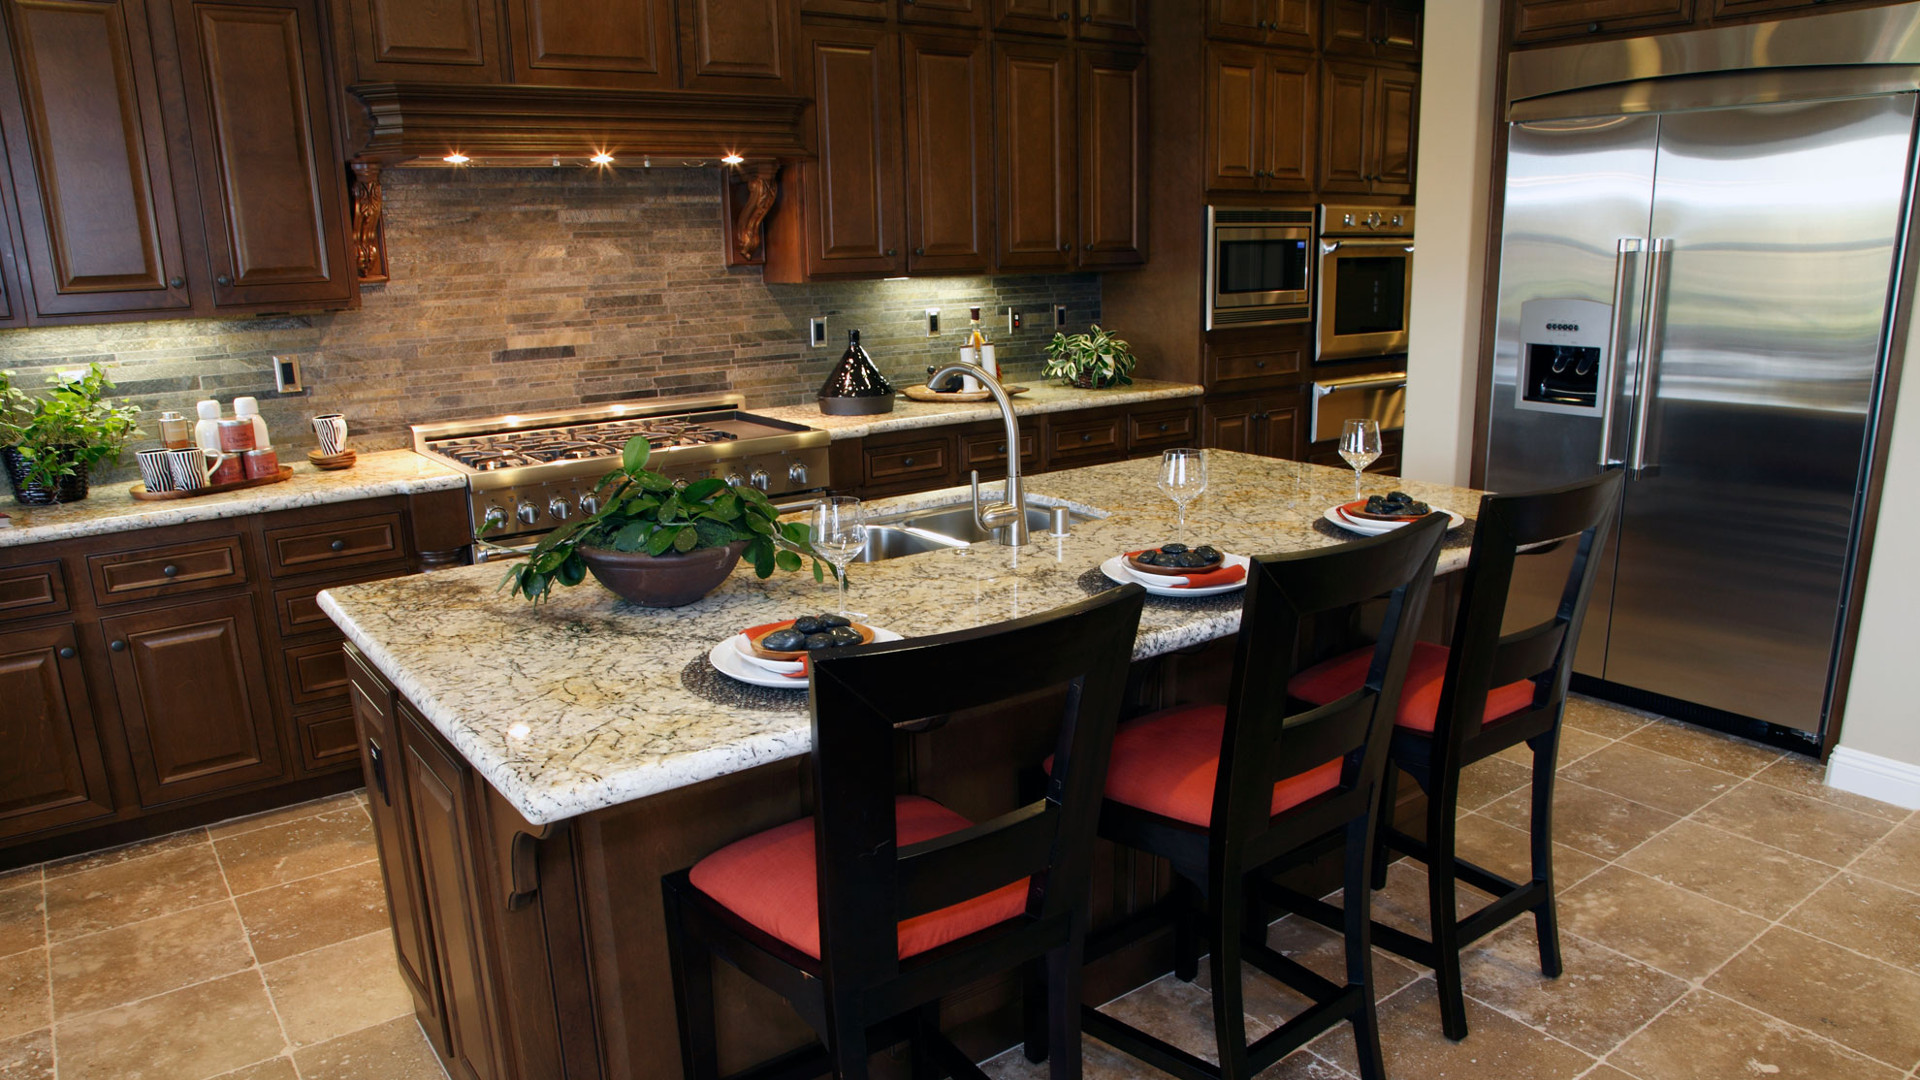 Bremerton Remodeling Counter Tops Cabinets And Quartz Countertops Specialists In Seattle Tacoma And Bremerton